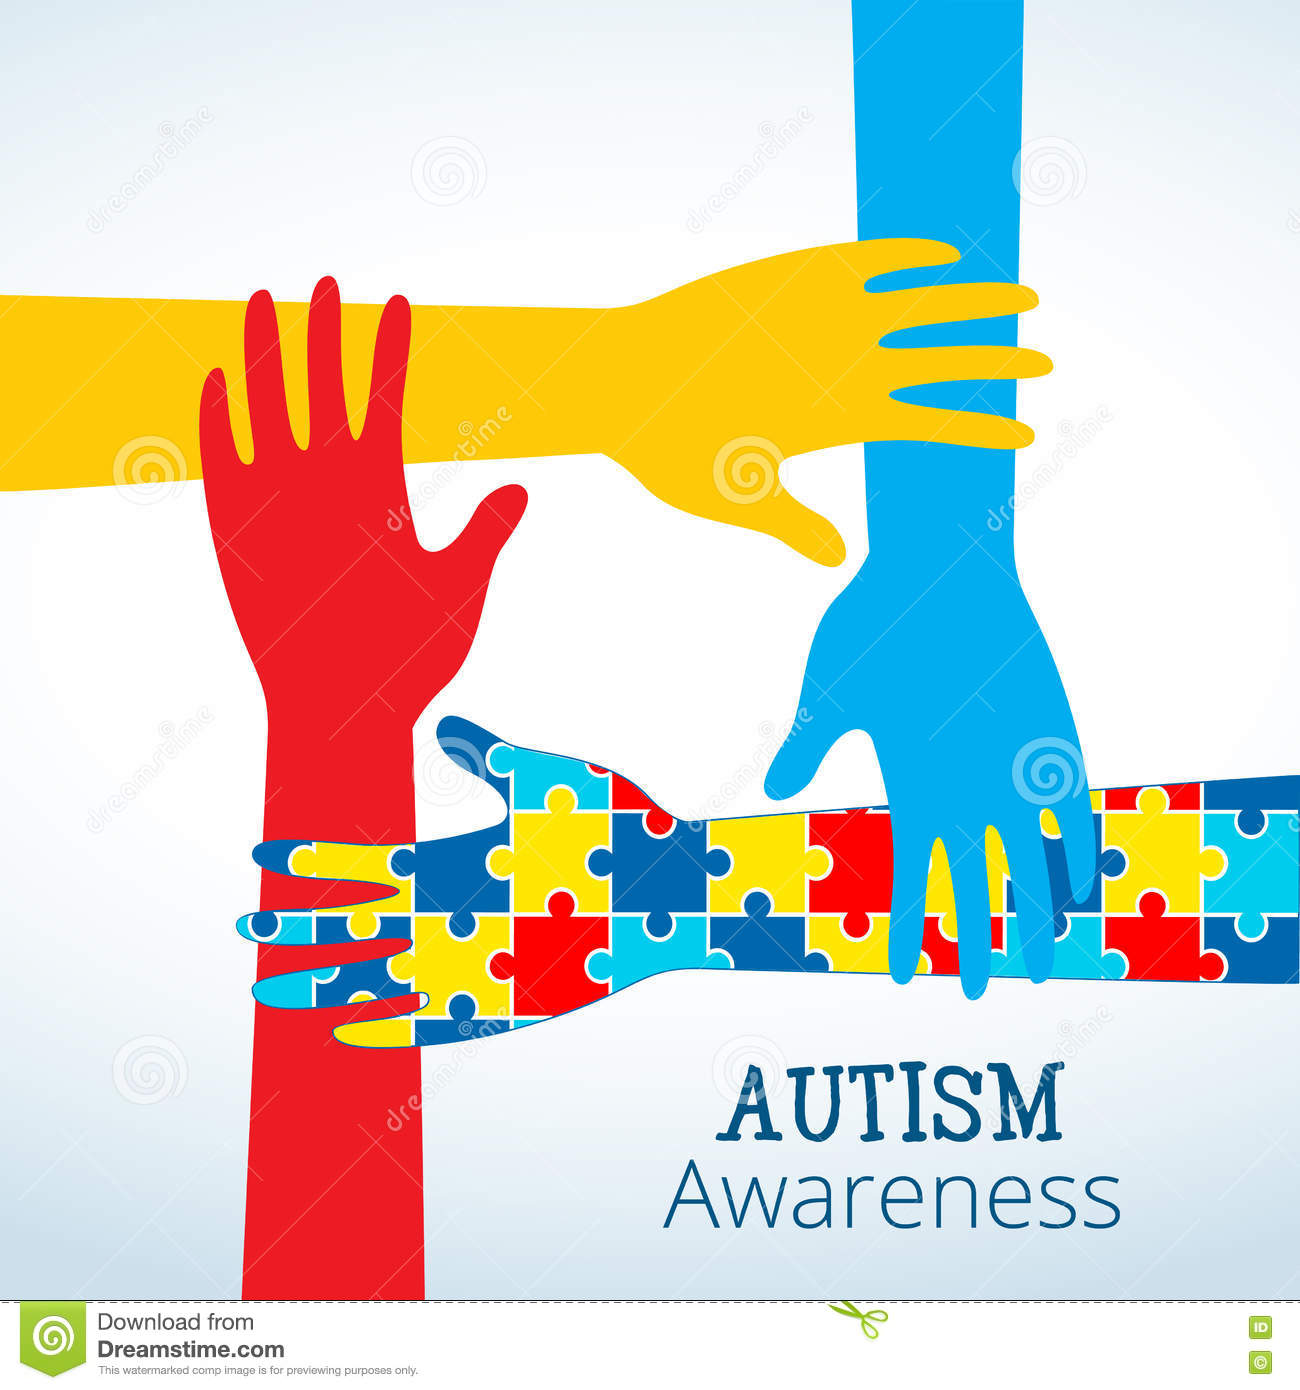 Autism Awareness Concept With Hand Of Puzzle Pieces Stock Vector